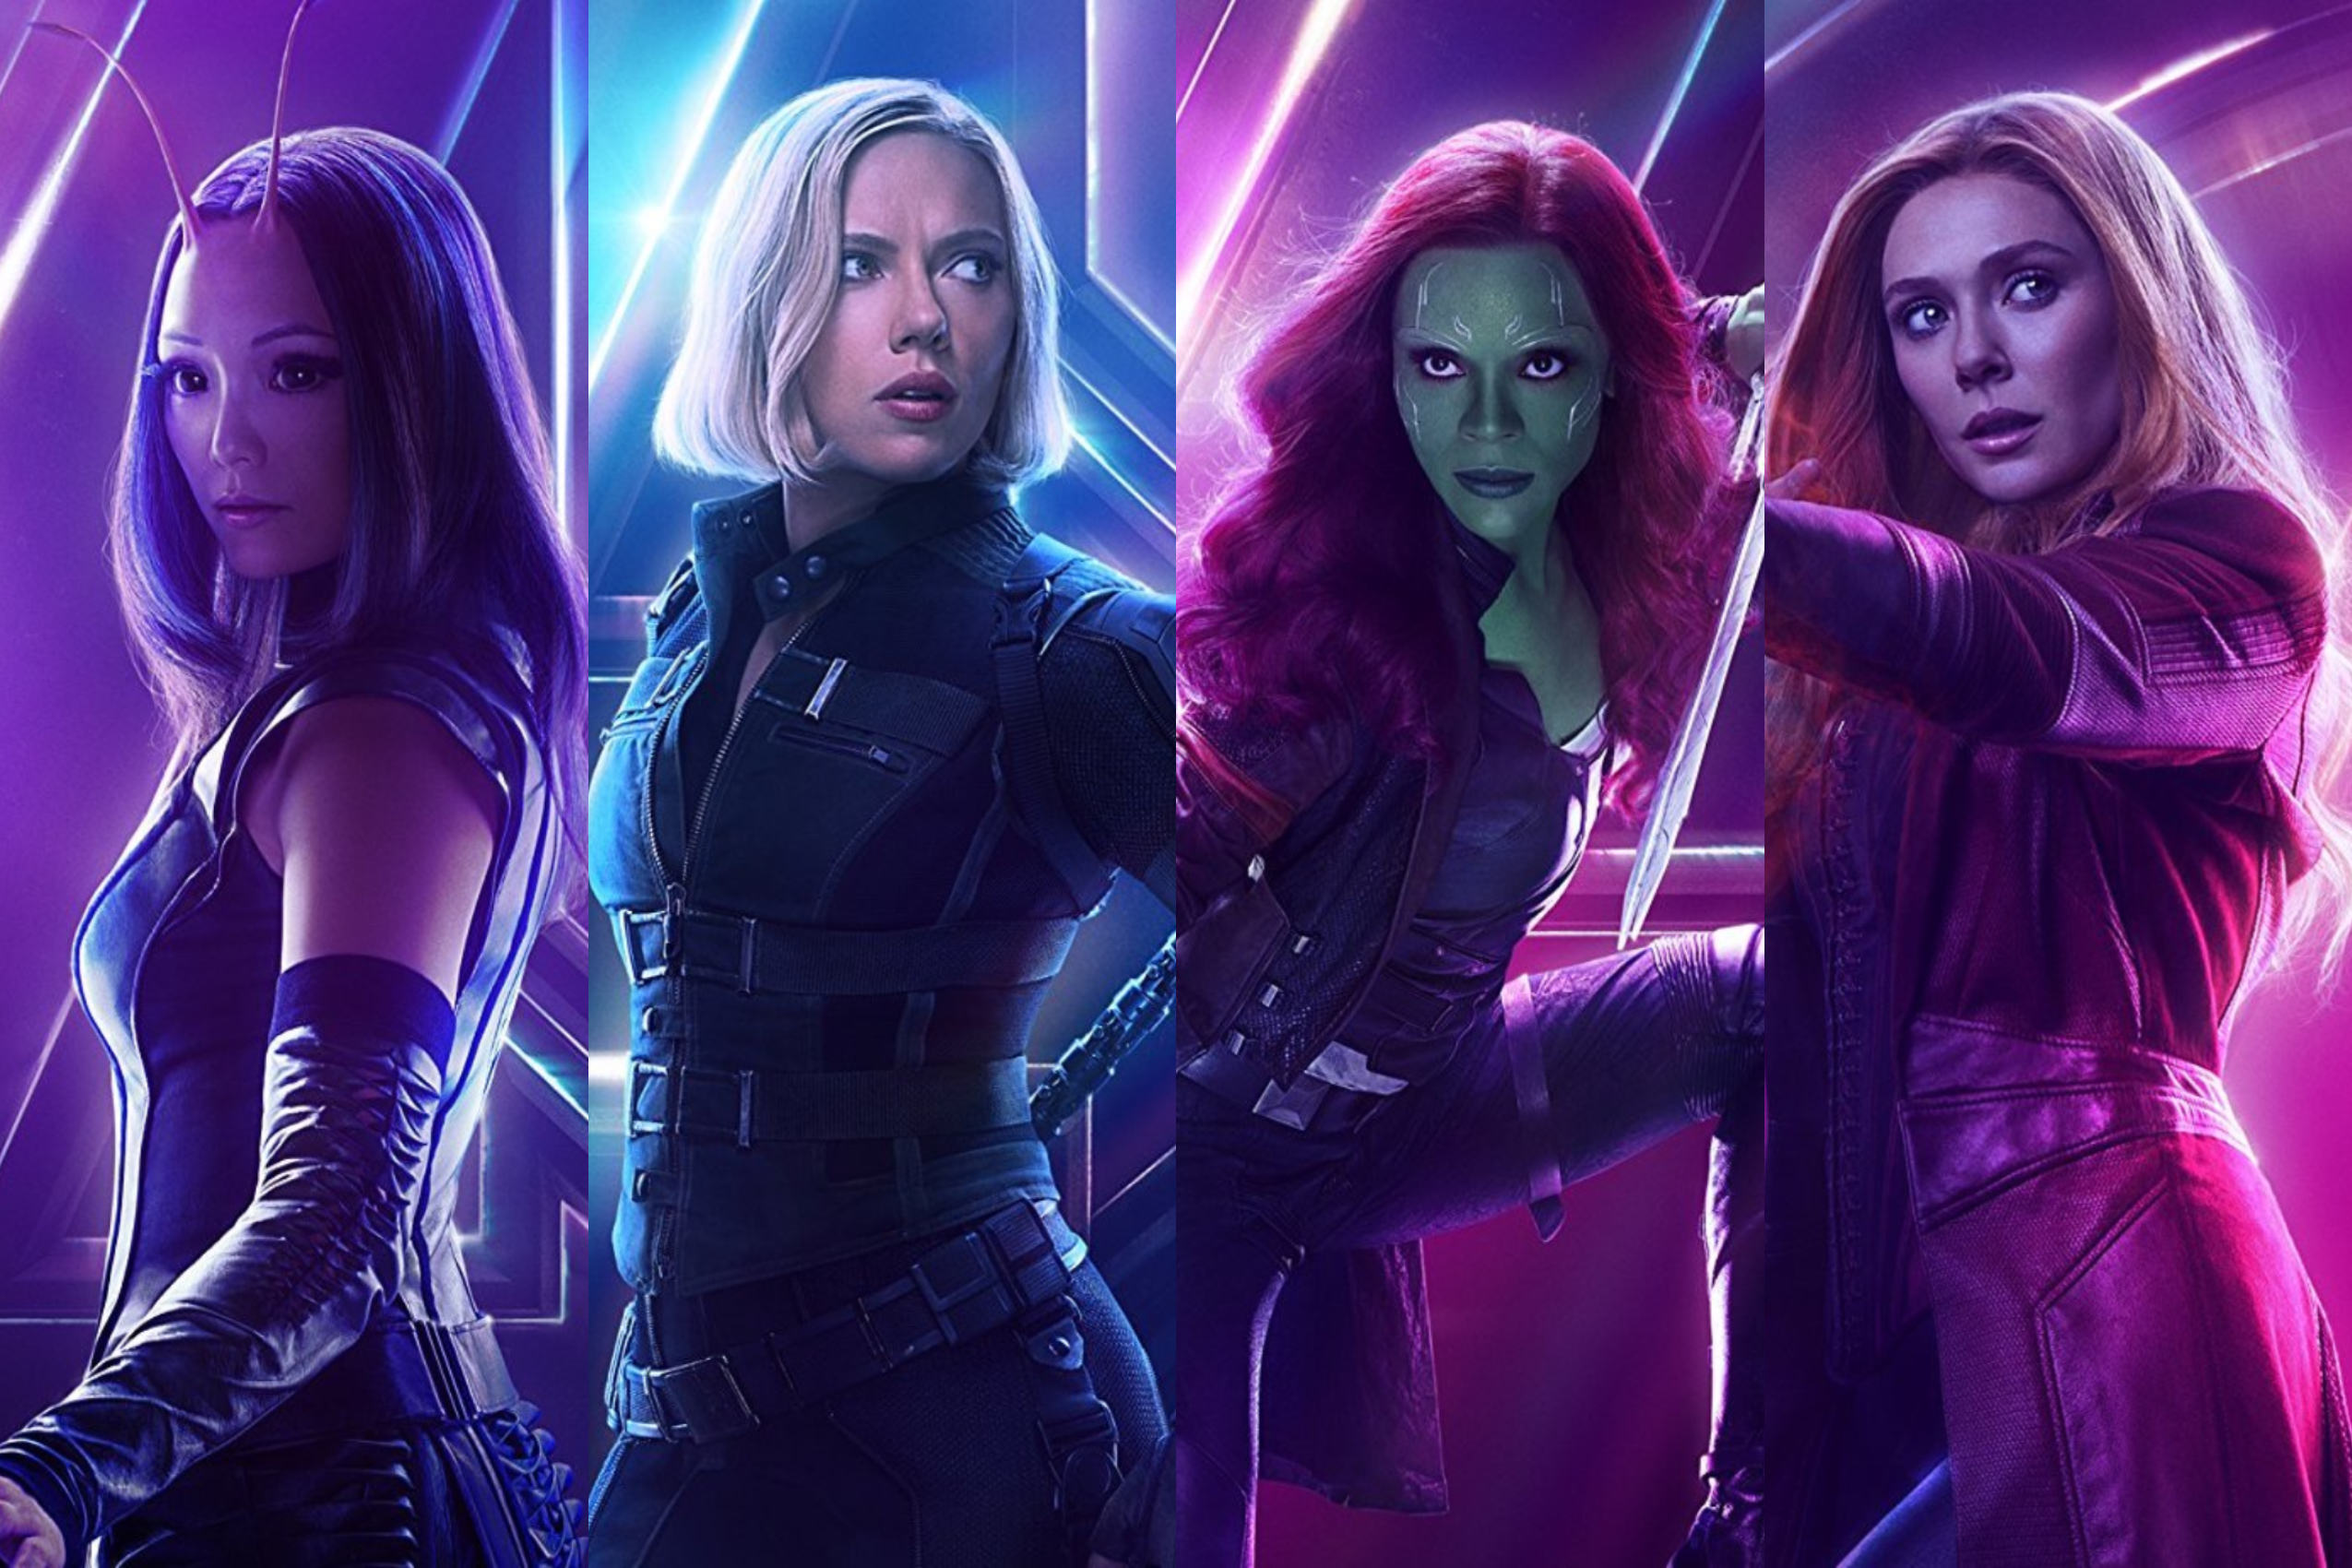 Mantis, Black Widow, Gamora, and Scarlet Witch of Avengers: Infinity War.